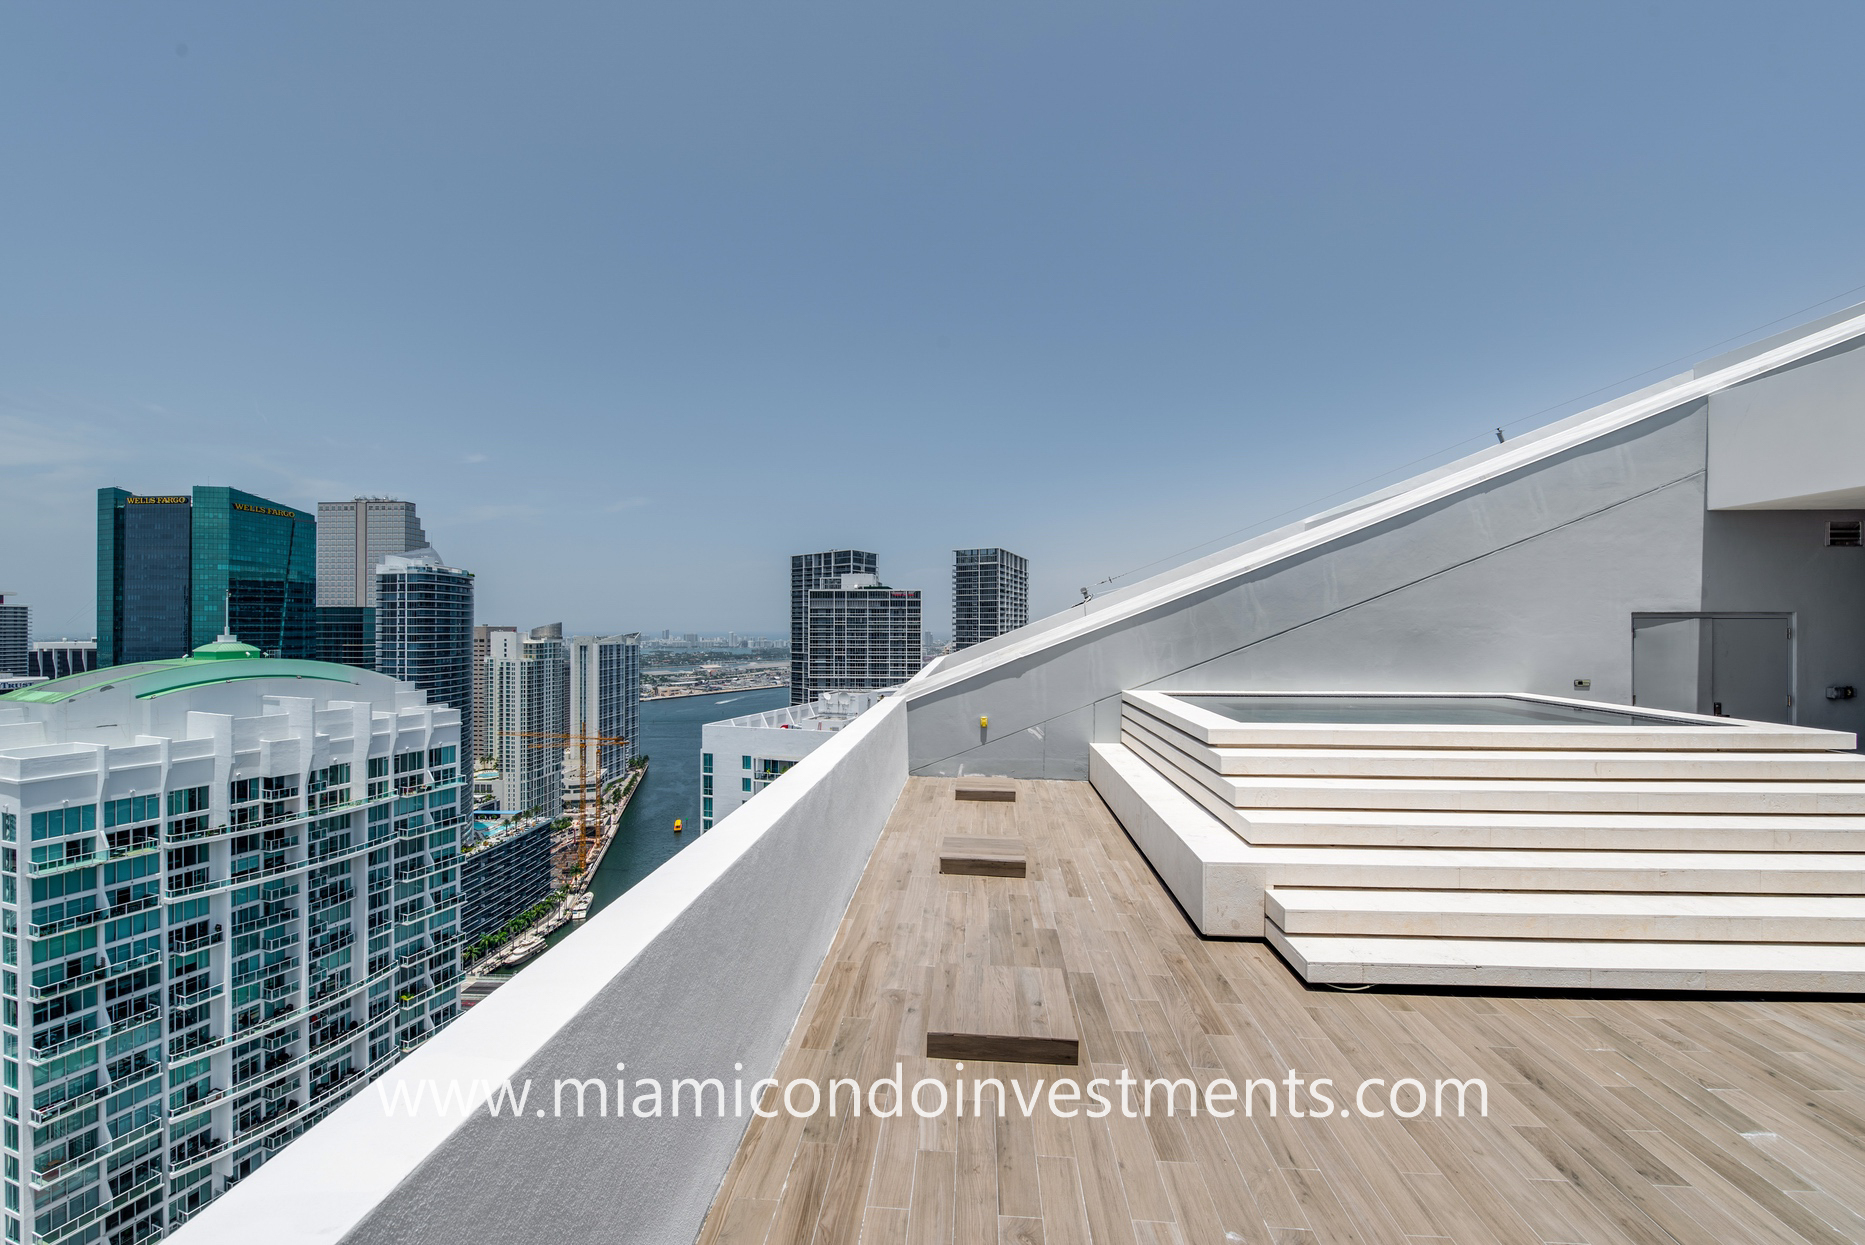 views of Miami River and Biscayne Bay from rooftop terrace